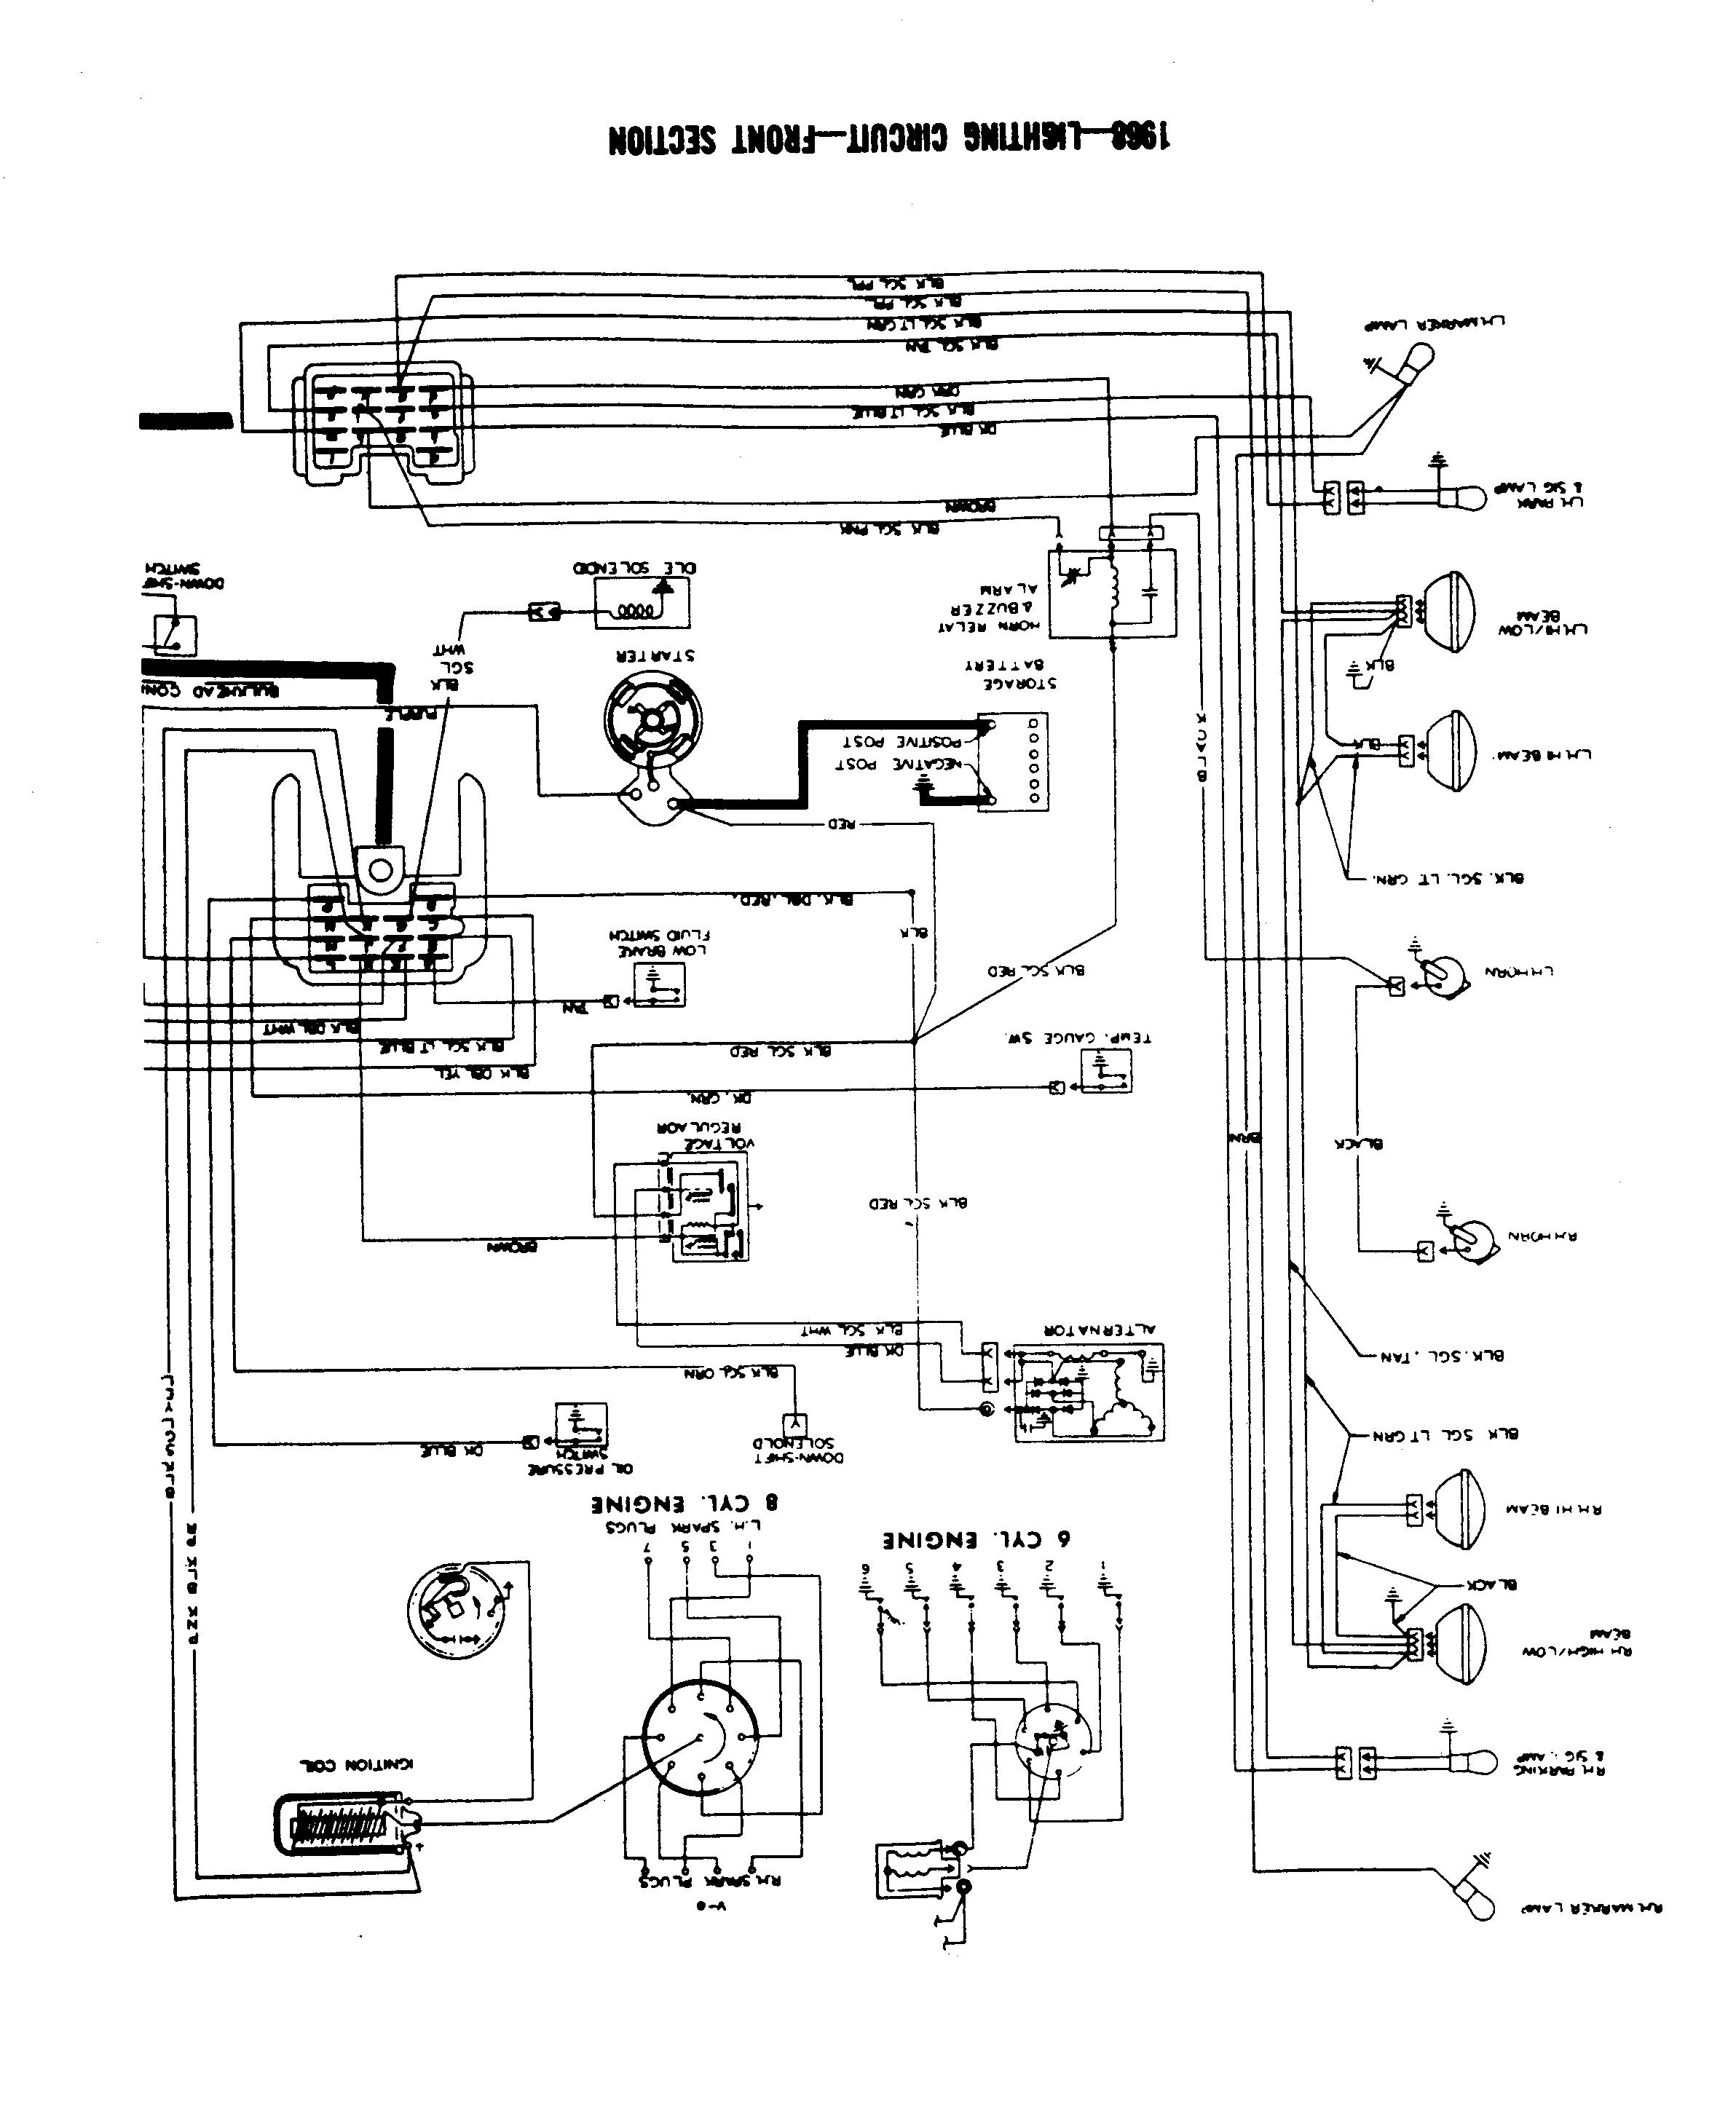 1964 pontiac gto turn signal wiring diagram